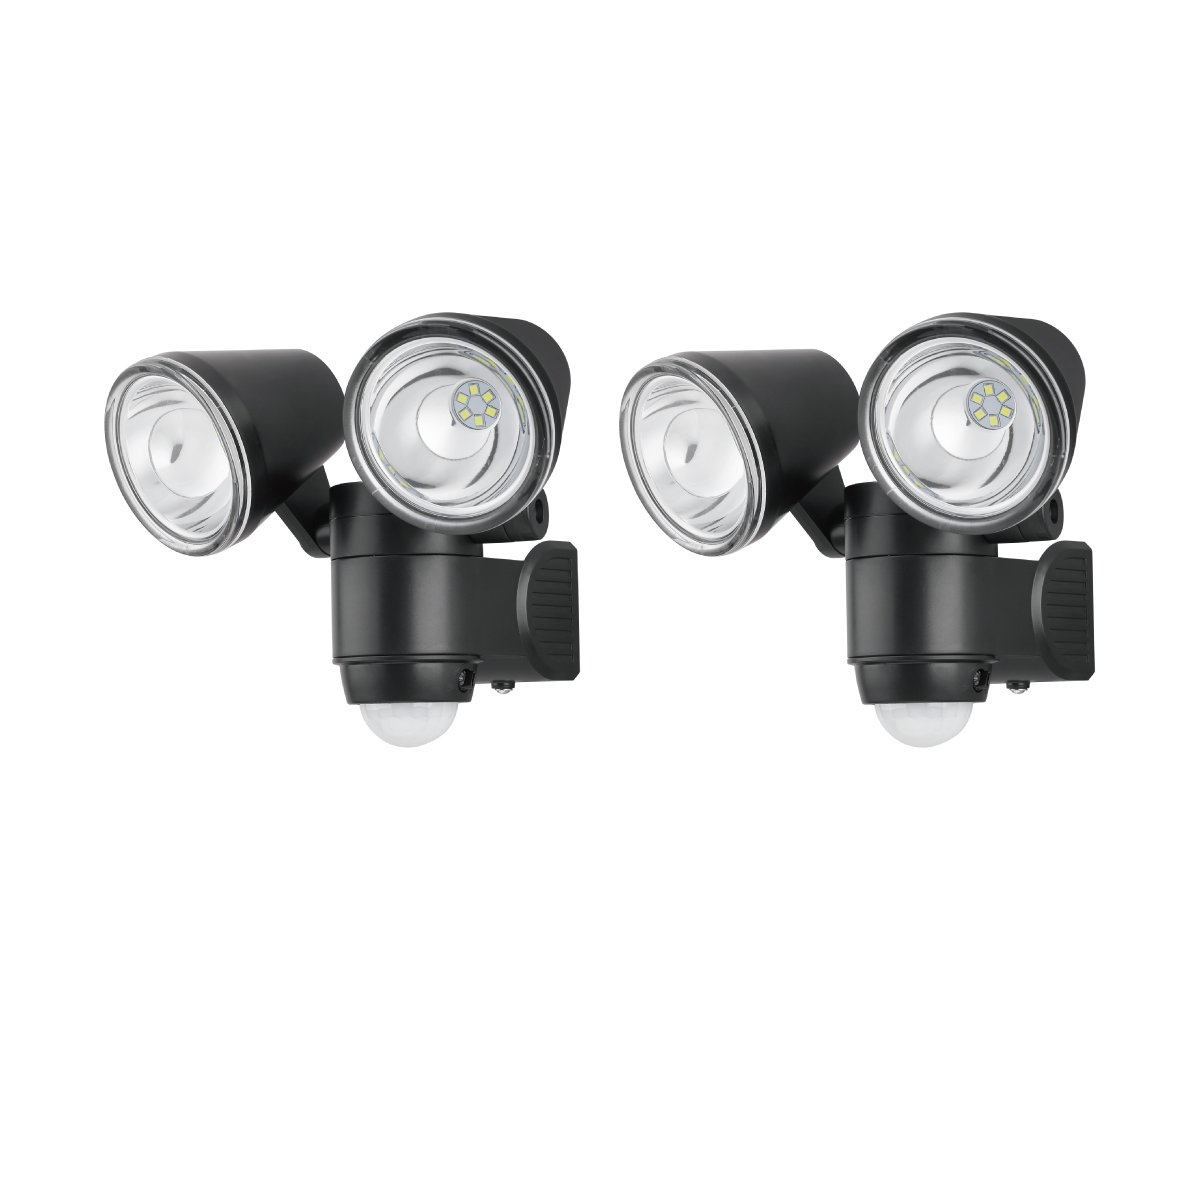 Link2Home EM-BL268B-2PK 330 Lumen LED Battery Operated Security Adjustable Dual-Head Sensor Floodlight with Photocell Technology in Black, 2pk